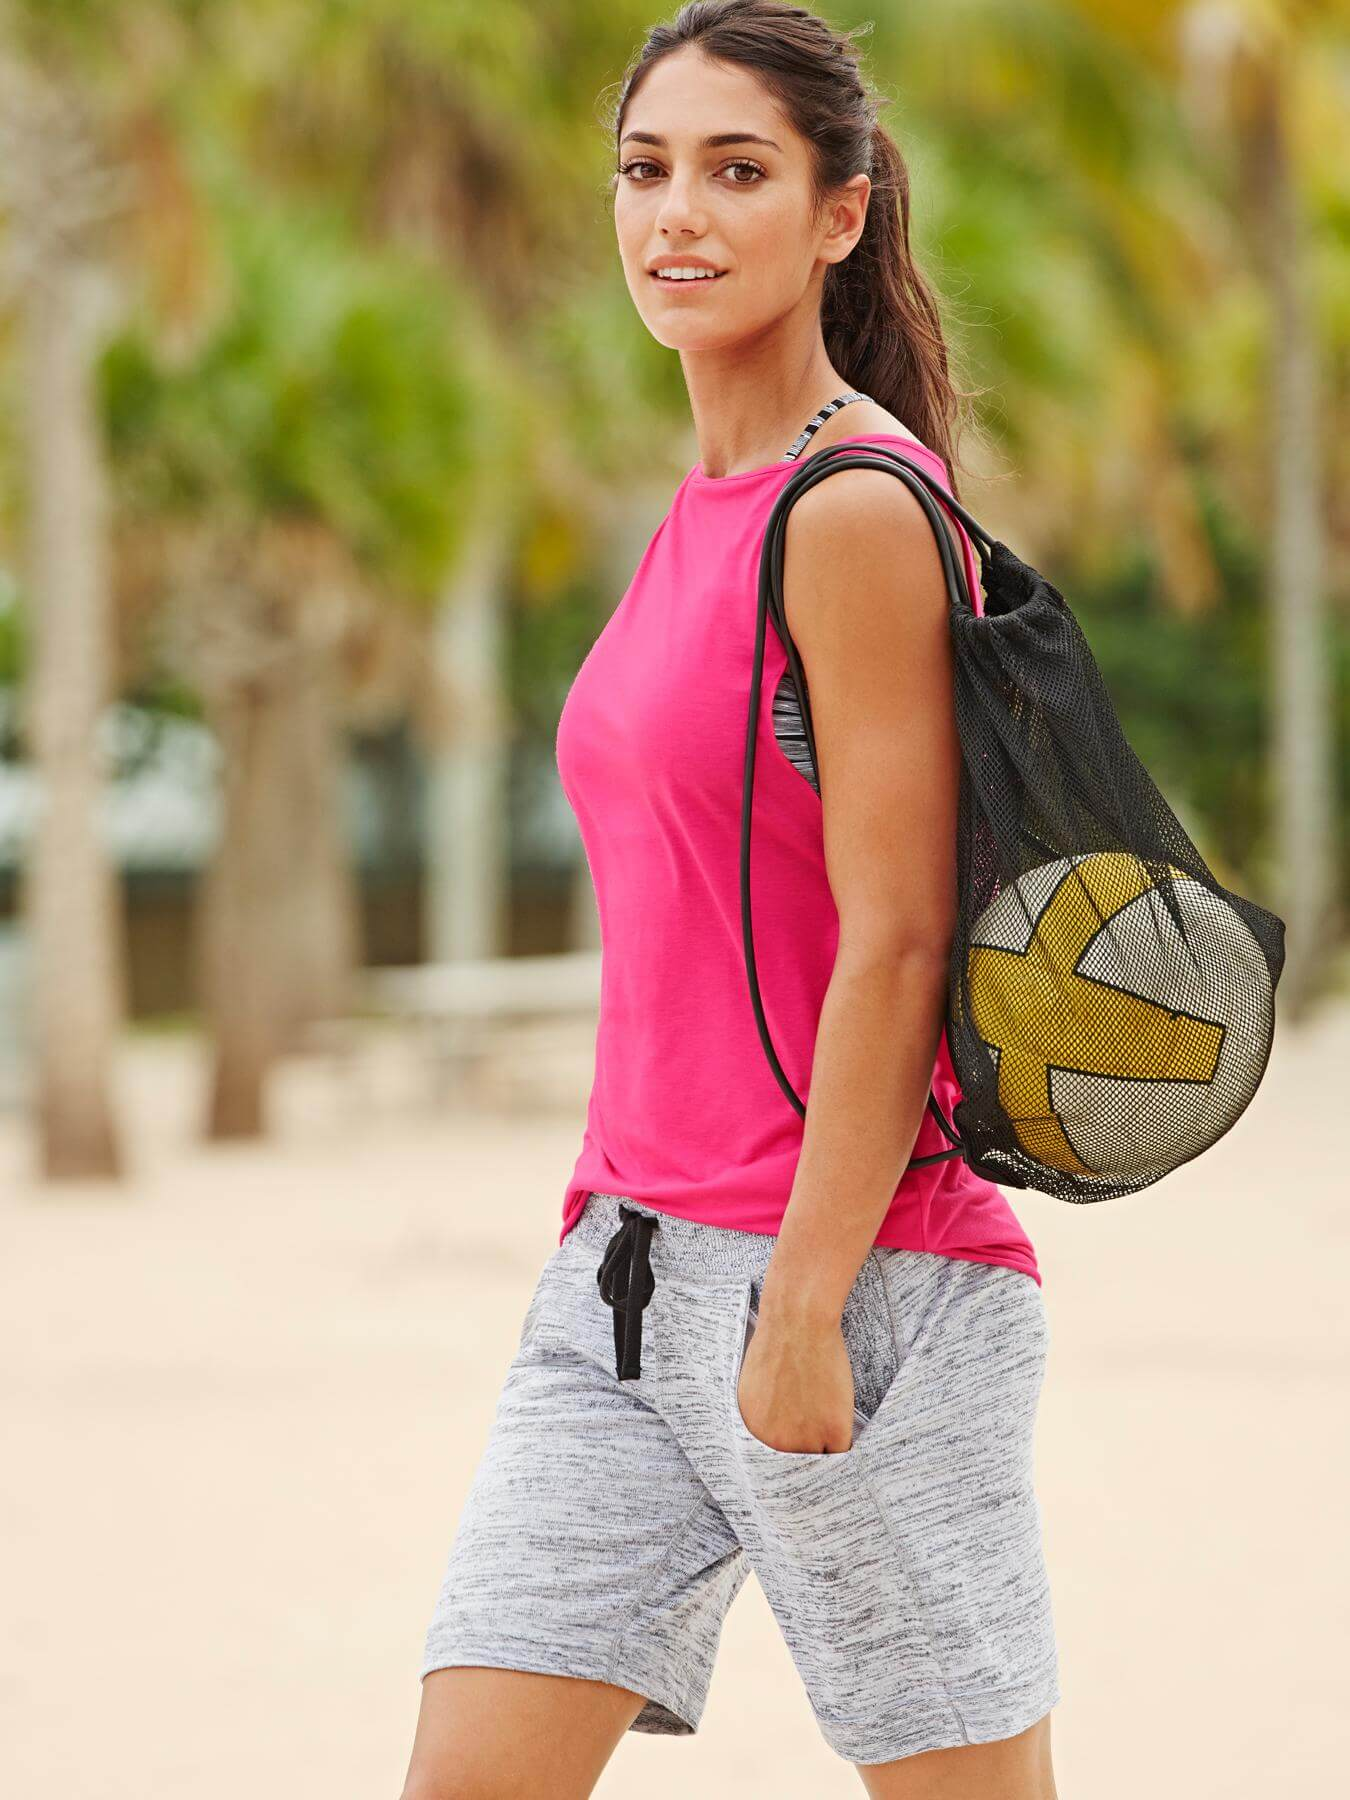 Allison Stokke Hot in Pink Sports Wear